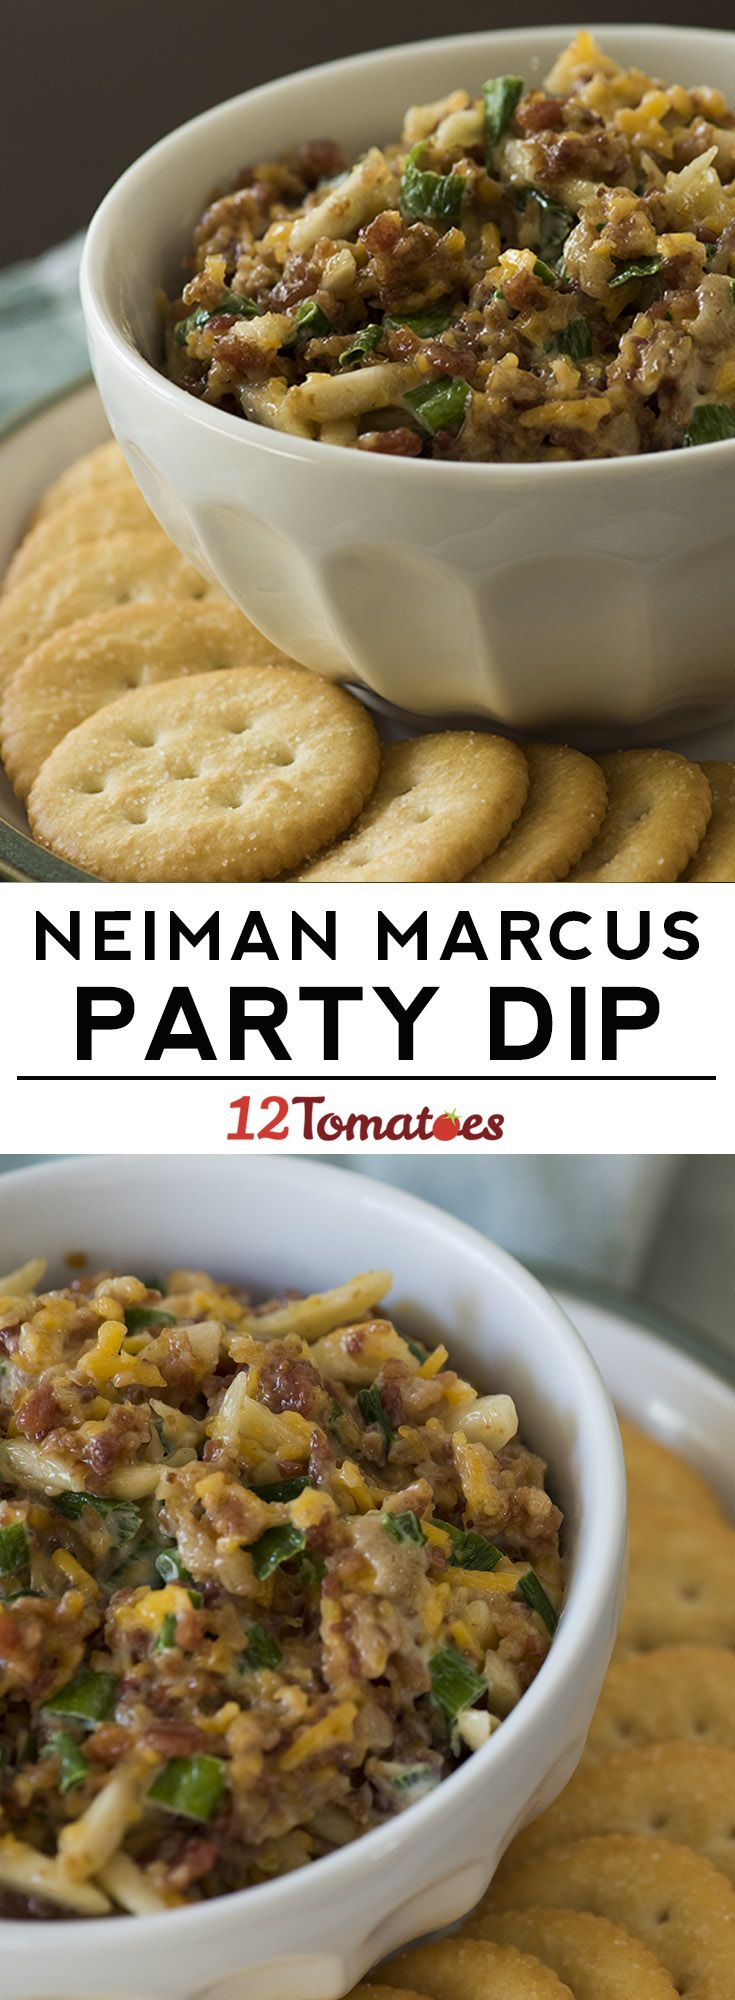 Neiman Marcus Dip! With five ingredients, along with whatever chips or crackers you decide to serve this with, this Neiman Marcus dip is packed with cheese...